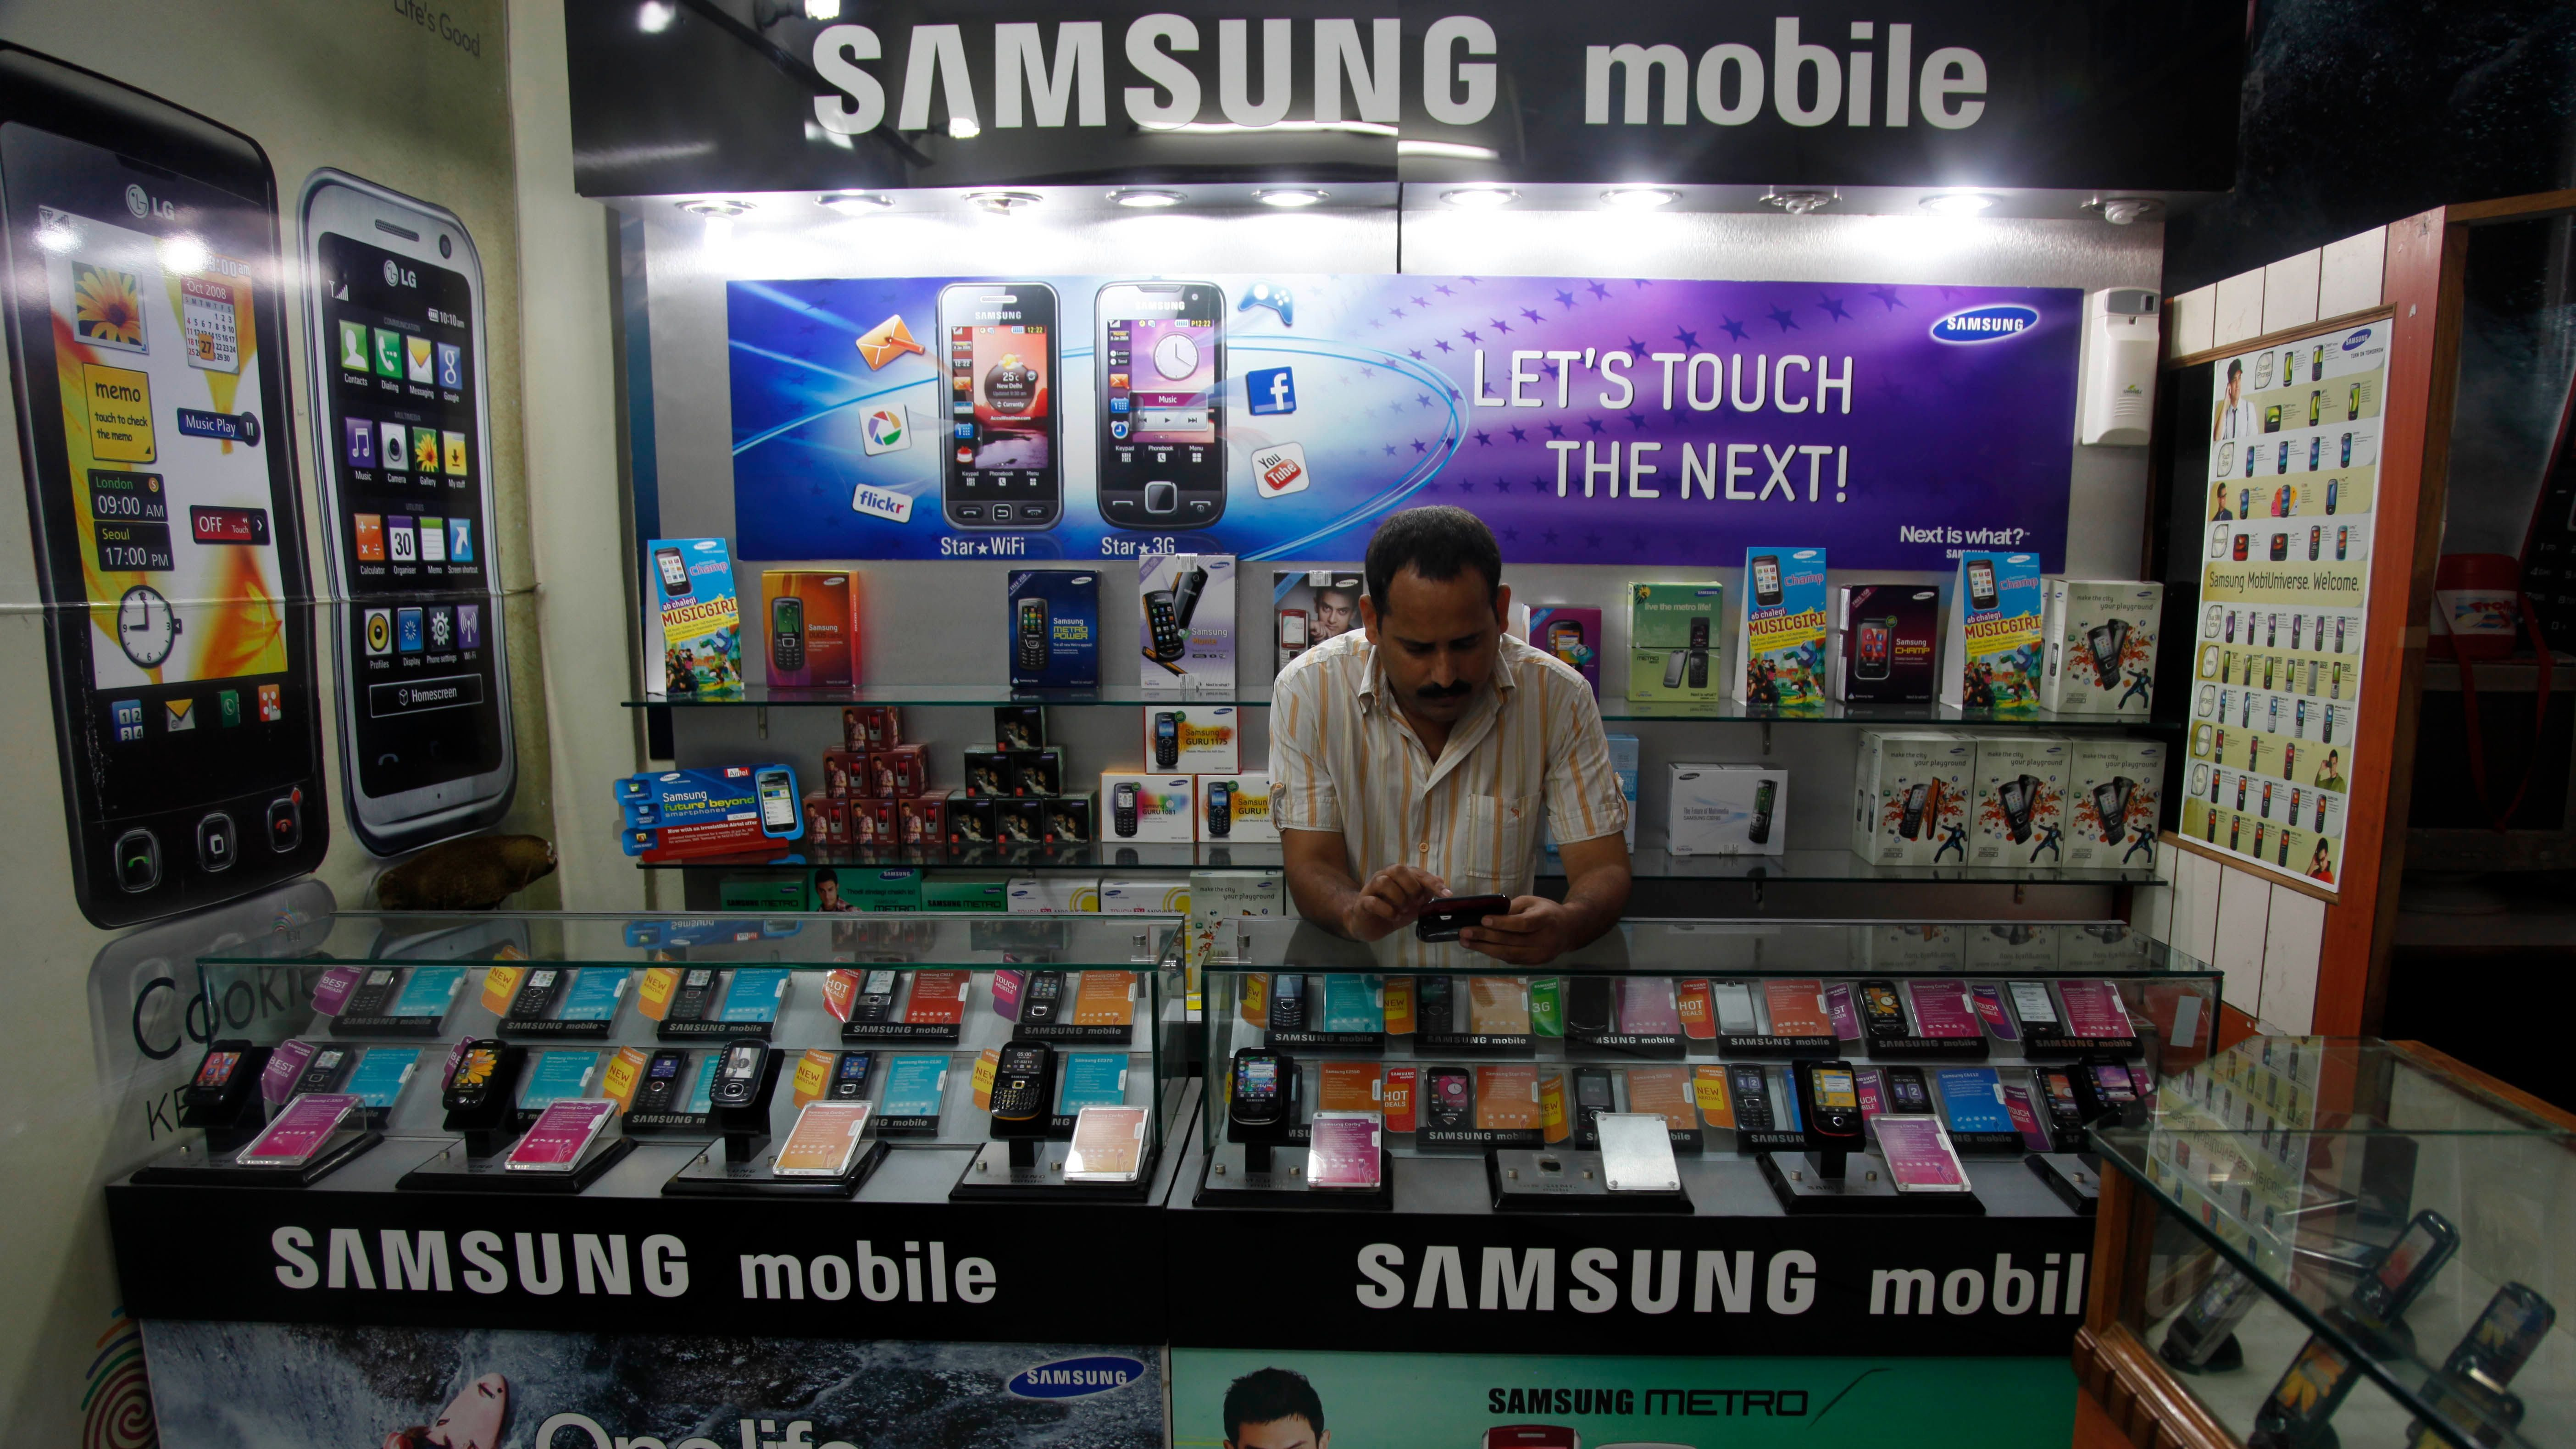 A shopkeeper stands in his shop displaying Samsung mobile advertisements in Allahabad, India, Thursday, Sept. 2, 2010. India has widened its security crackdown, asking all companies that provide encrypted communications, not just BlackBerry-maker Research In Motion, to install servers in the country to make it easier for the government to obtain users' data. Rajesh Chharia, president of the Internet Service Providers Association of India, said the government wants everyone, including RIM, Skype, Google, Nokia and MSN Hotmail, to give Indian security agencies more access to their user content. (AP Photo/Rajesh Kumar Singh)